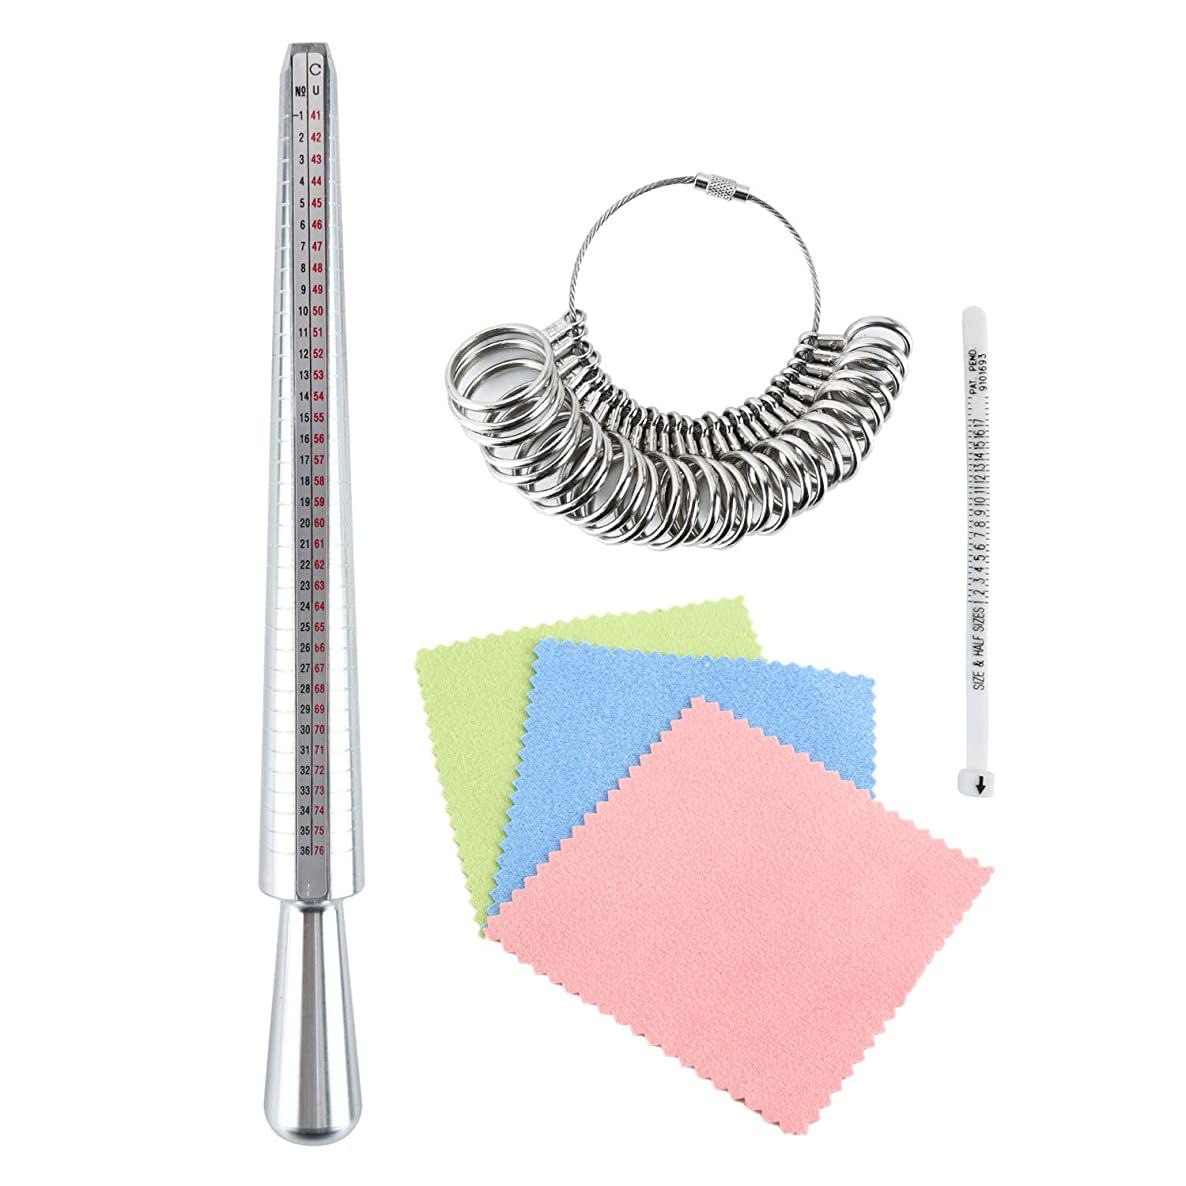 Ring Sizer Mandrel Measuring Tool Plastic Ring Sizer Belt Finger Measurement Set with 3 Piece Jewelry Polishing Cloth